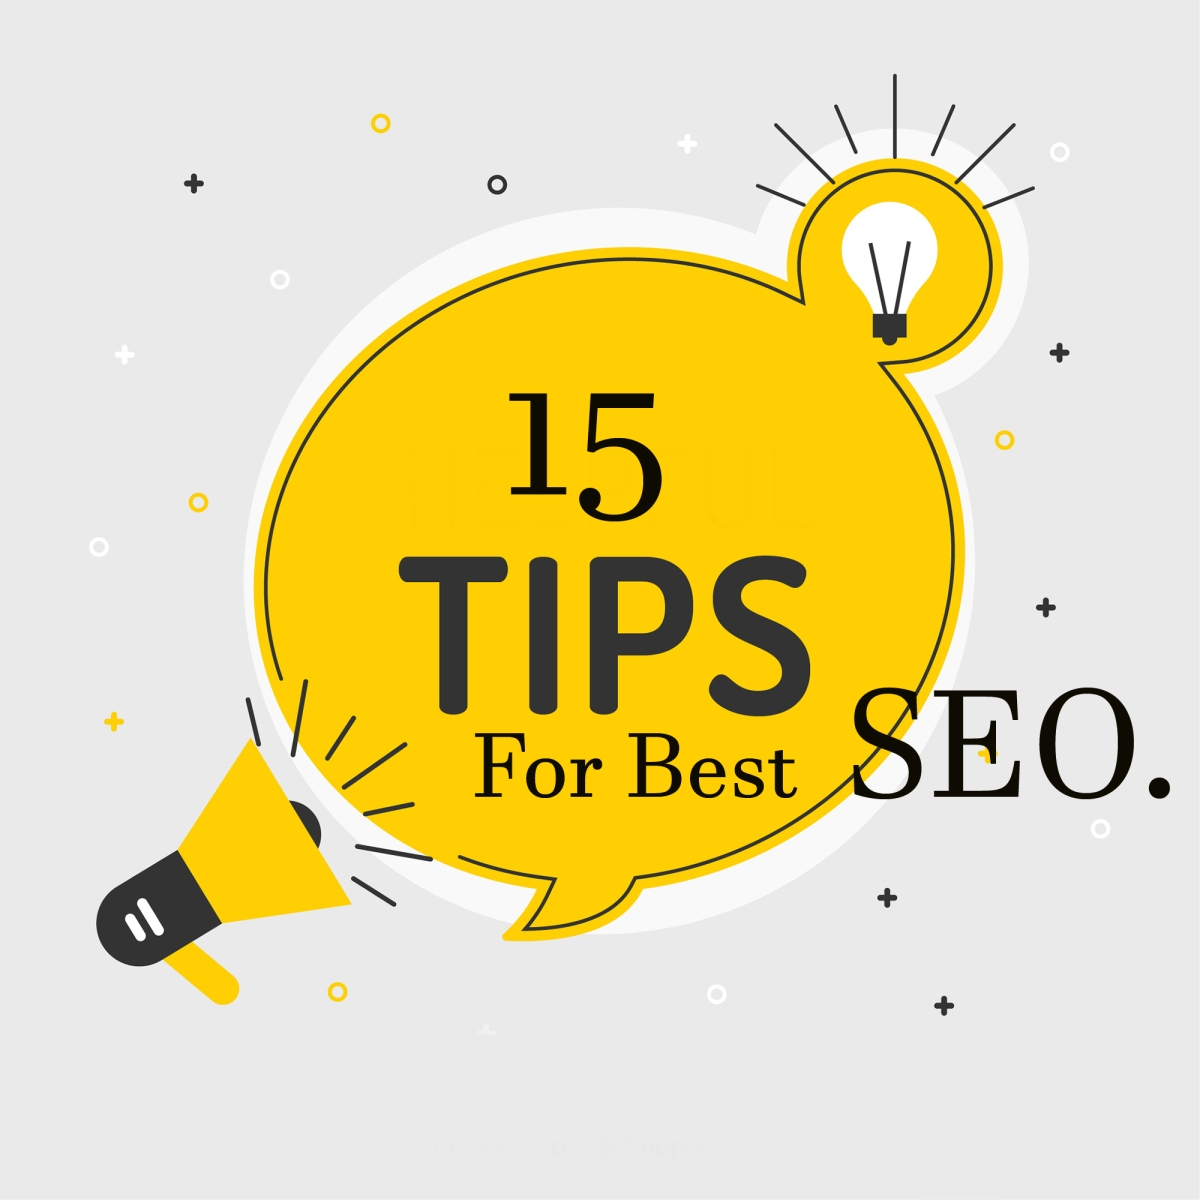 15 Tips for Best Search Engine Optimization (SEO)